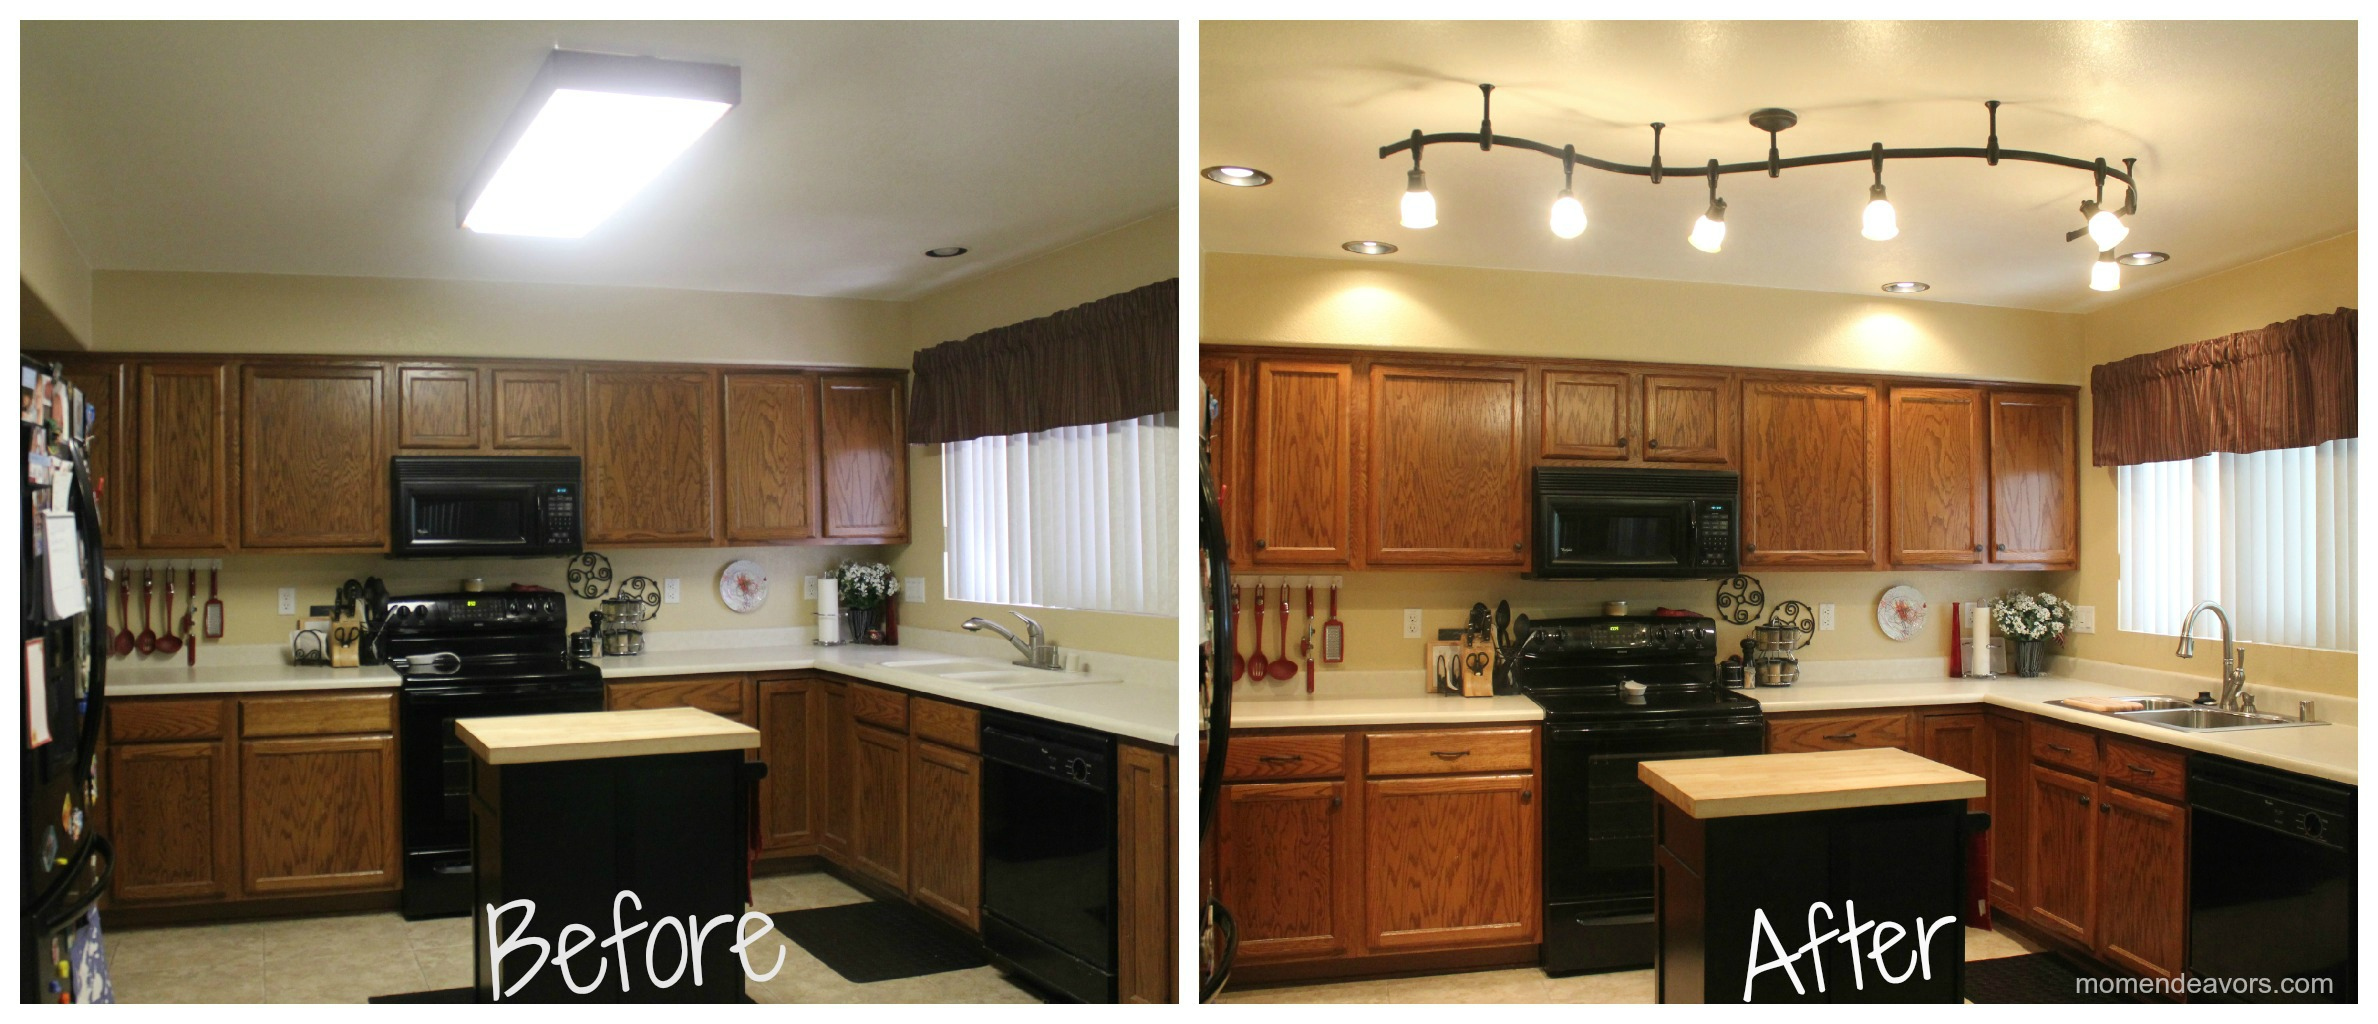 Lighting For A Kitchen Mini Kitchen Remodel New Lighting Makes A World Of Difference